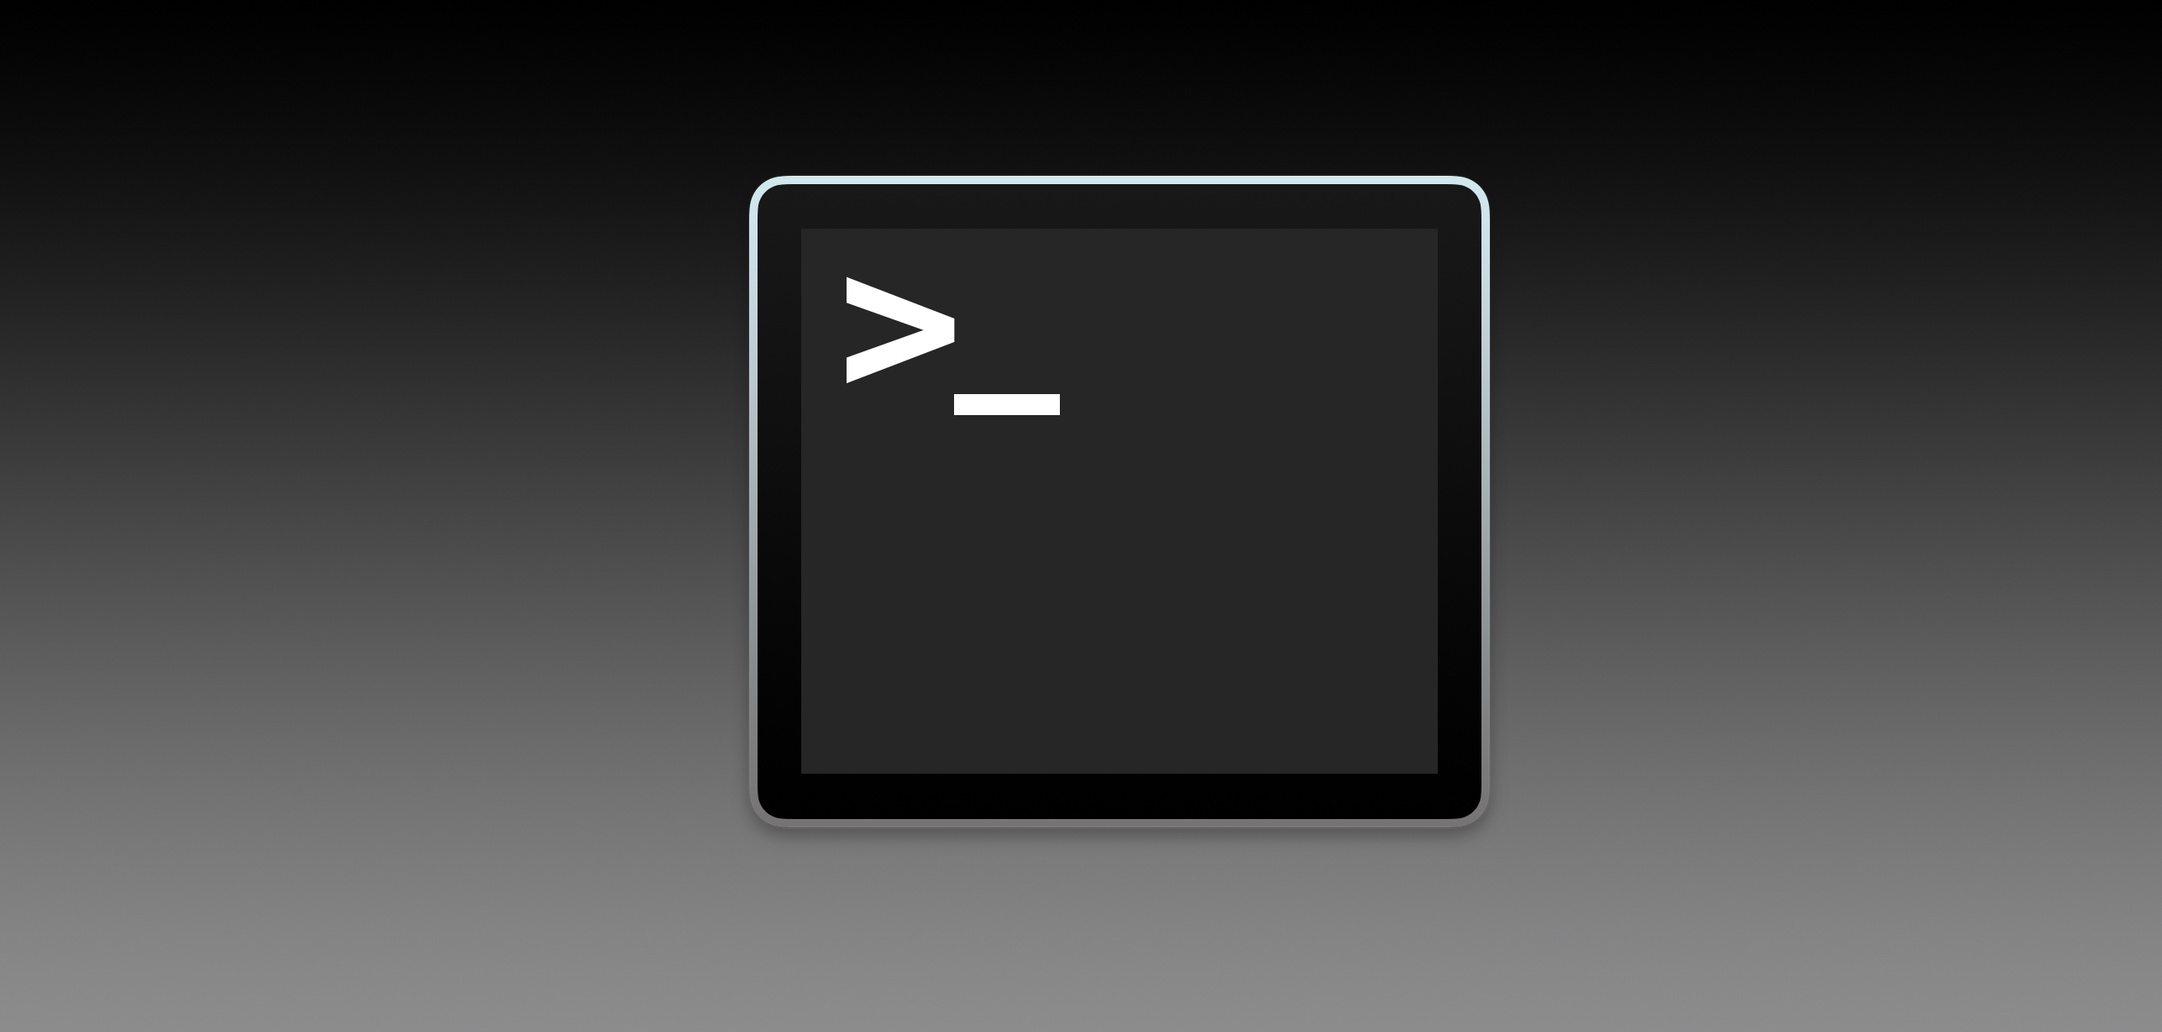 Common Terminal Commands for macOS